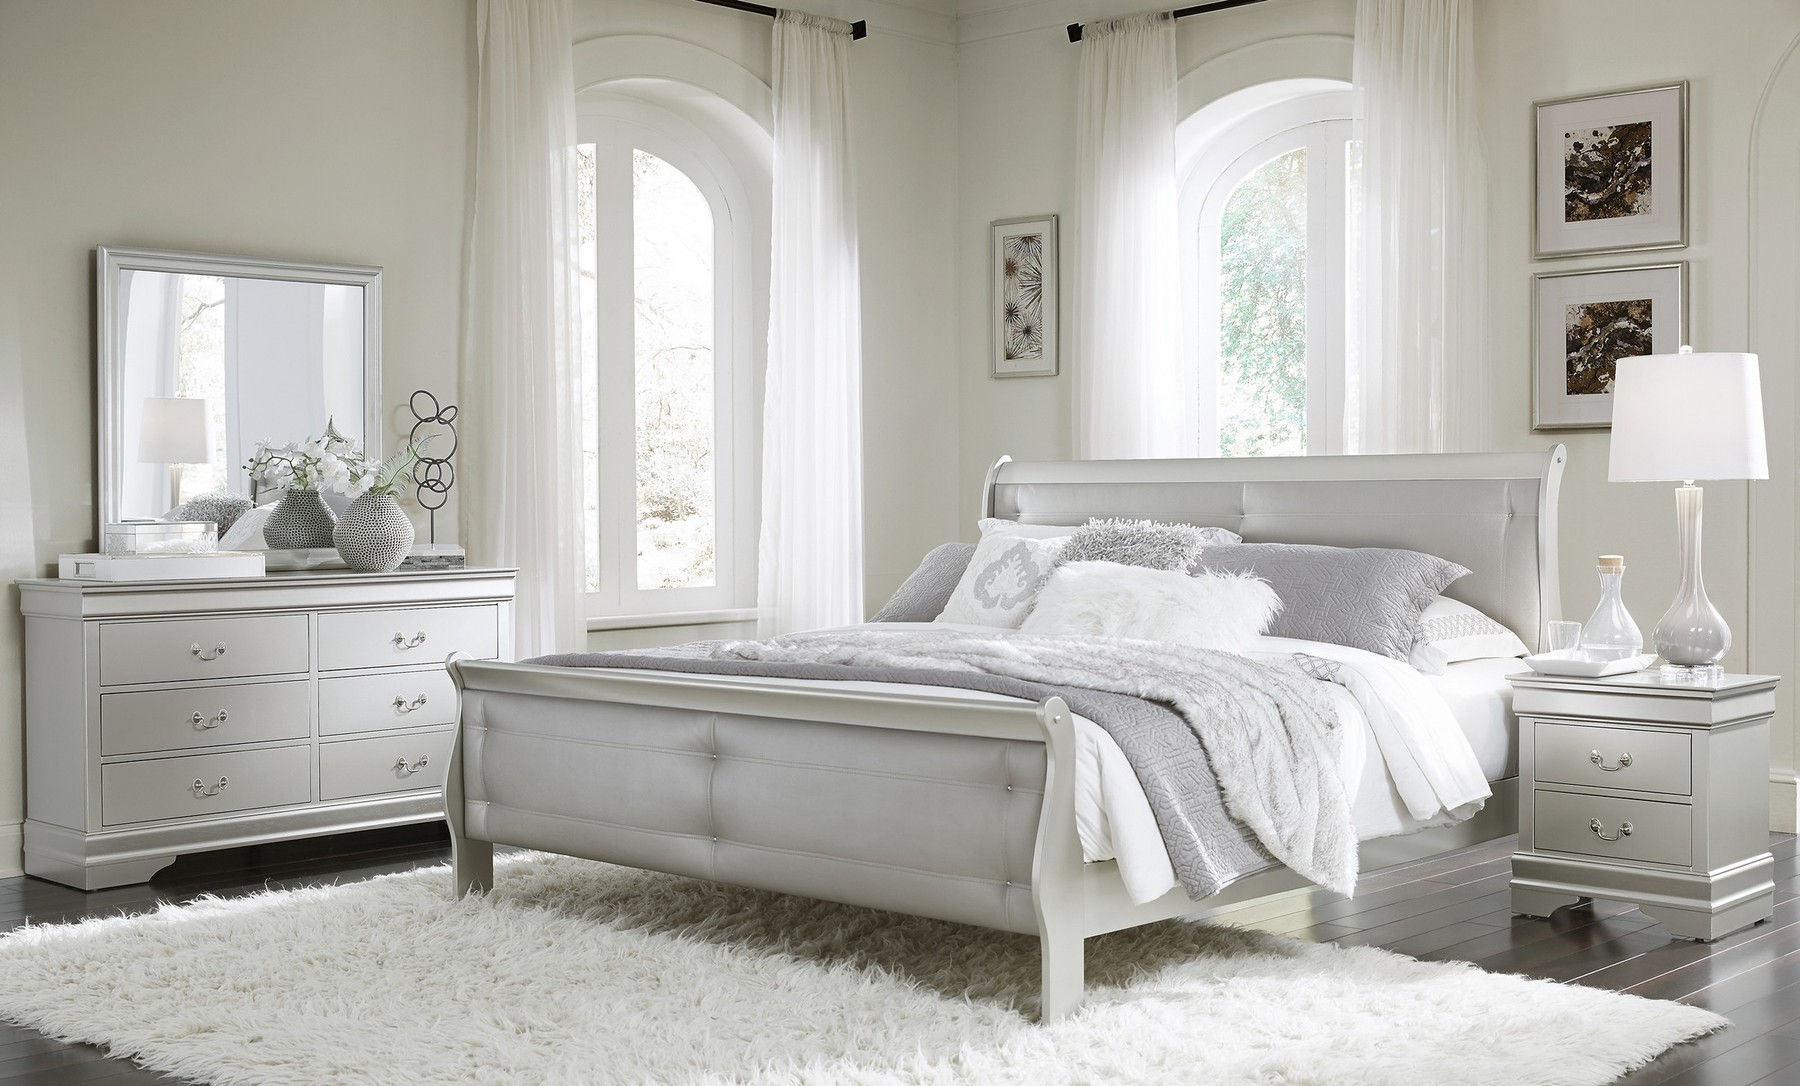 Marley Silver Queen Set Queen Size B 2ns Dr Mr Marley Global Furniture Usa Bedroom Sets Comfyco Furniture